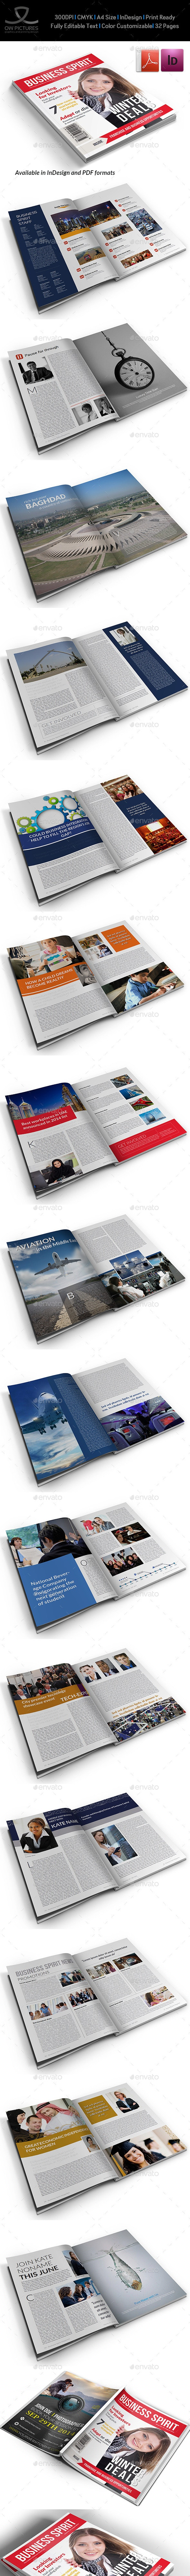 Business Spirit Newsletter Magazine - 32 Pages - Newsletters Print Templates